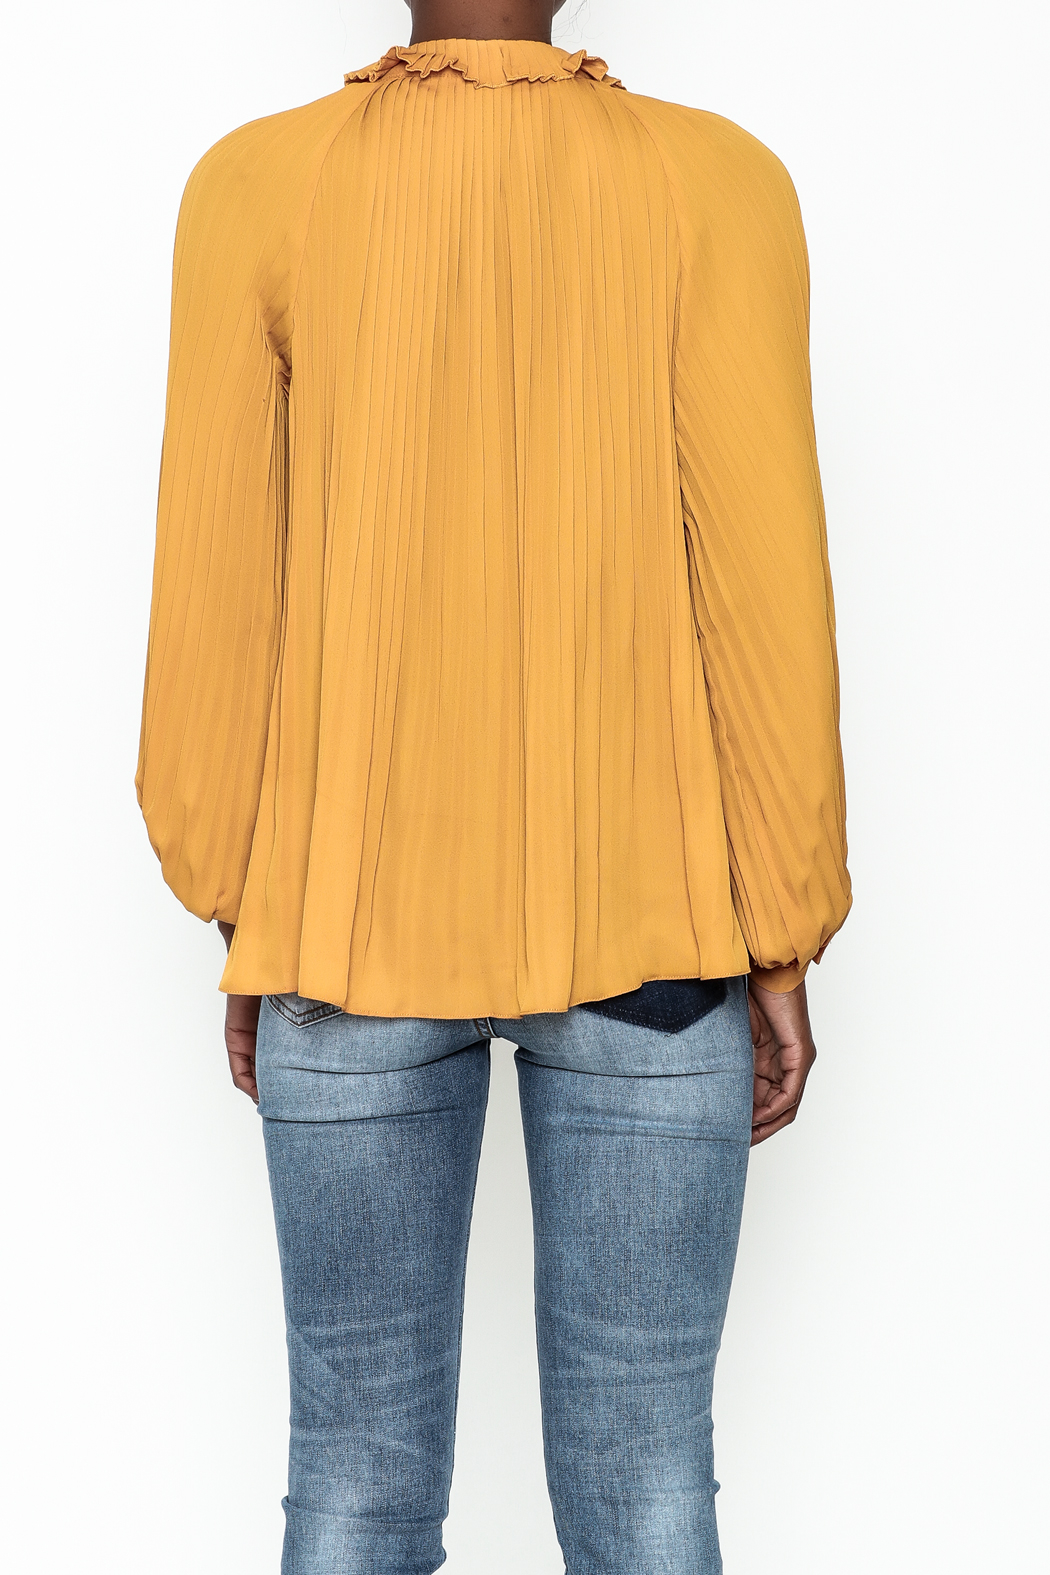 Lucy Paris Olivia Pleated Blouse - Back Cropped Image